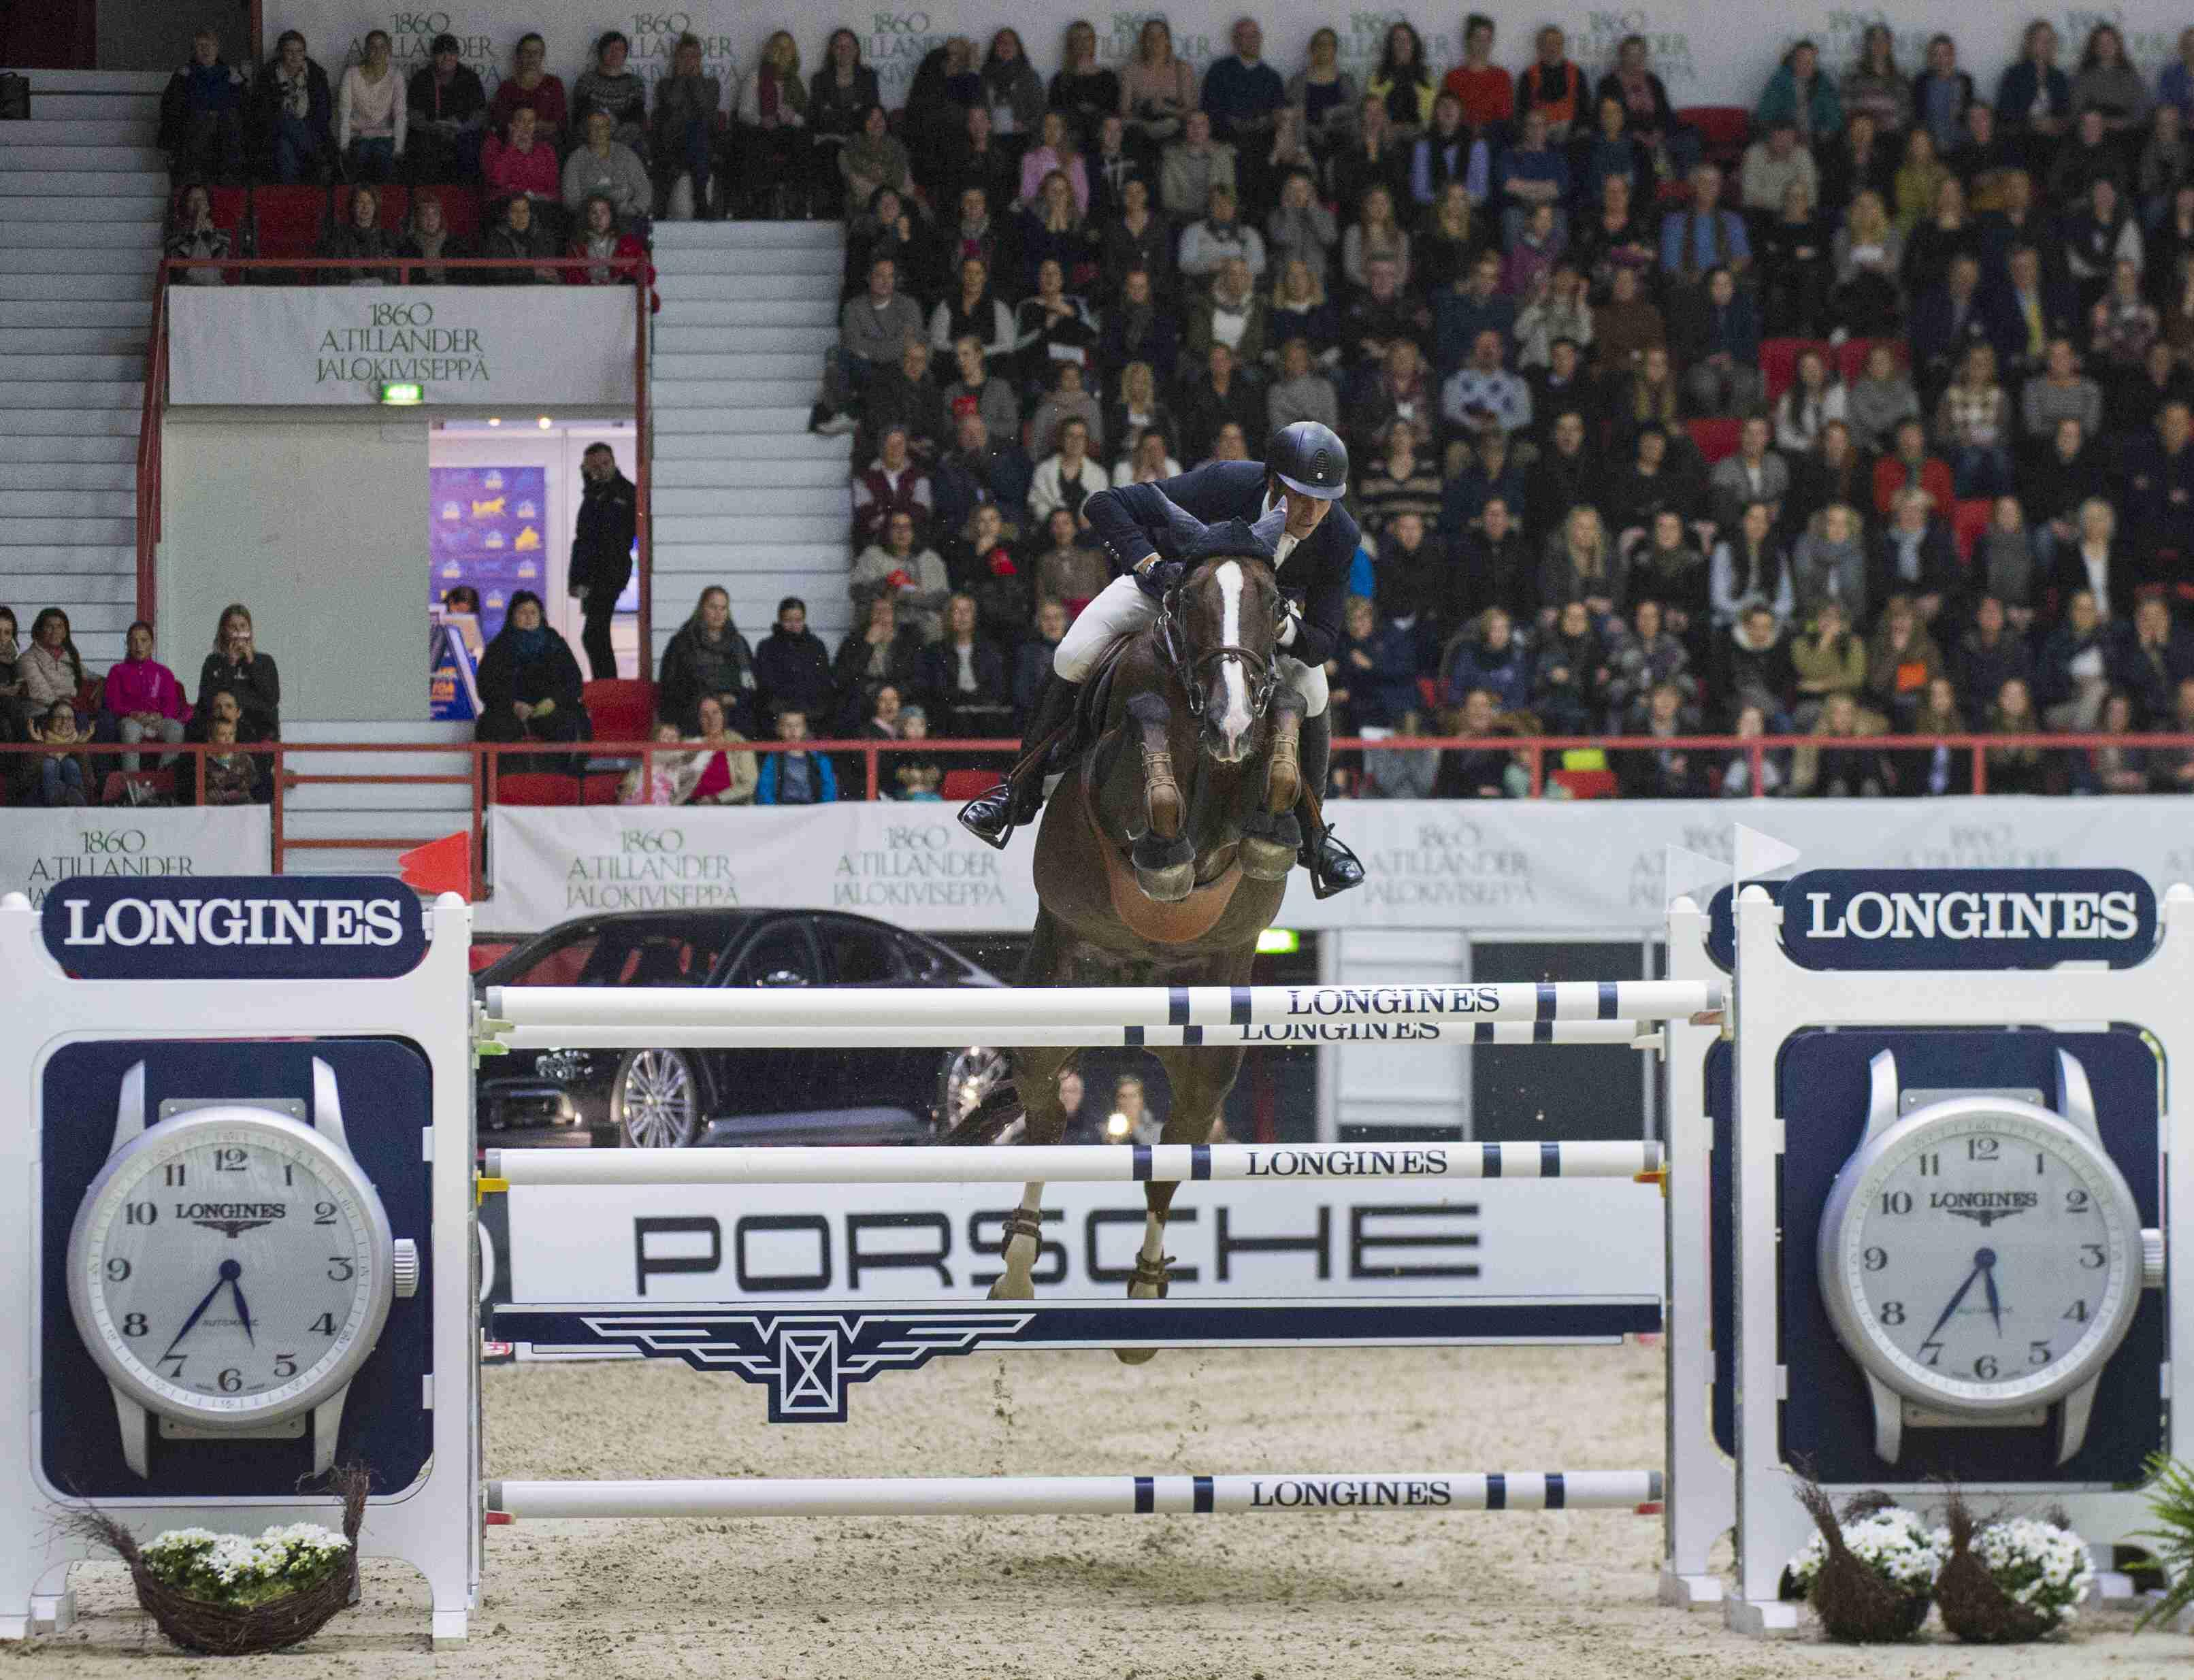 Quorida & Duguet make it a double of Longines wins at Helsinki